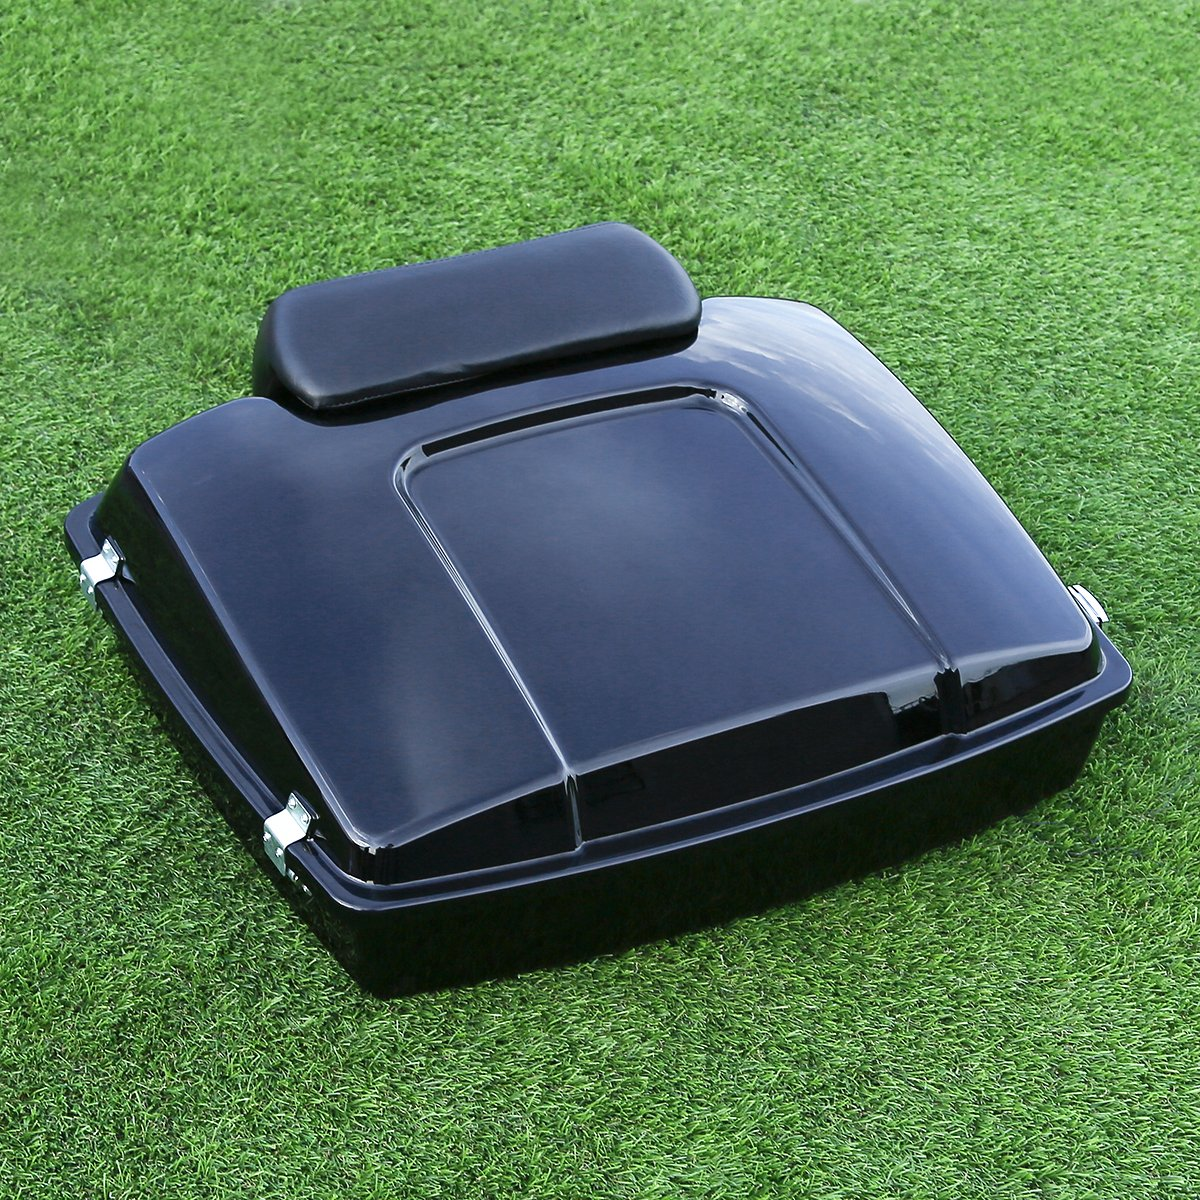 Pad For Harley Touring Road King Electra Glide 1997-2013 XMT-MOTO Razor Tour Pak Pack Trunk